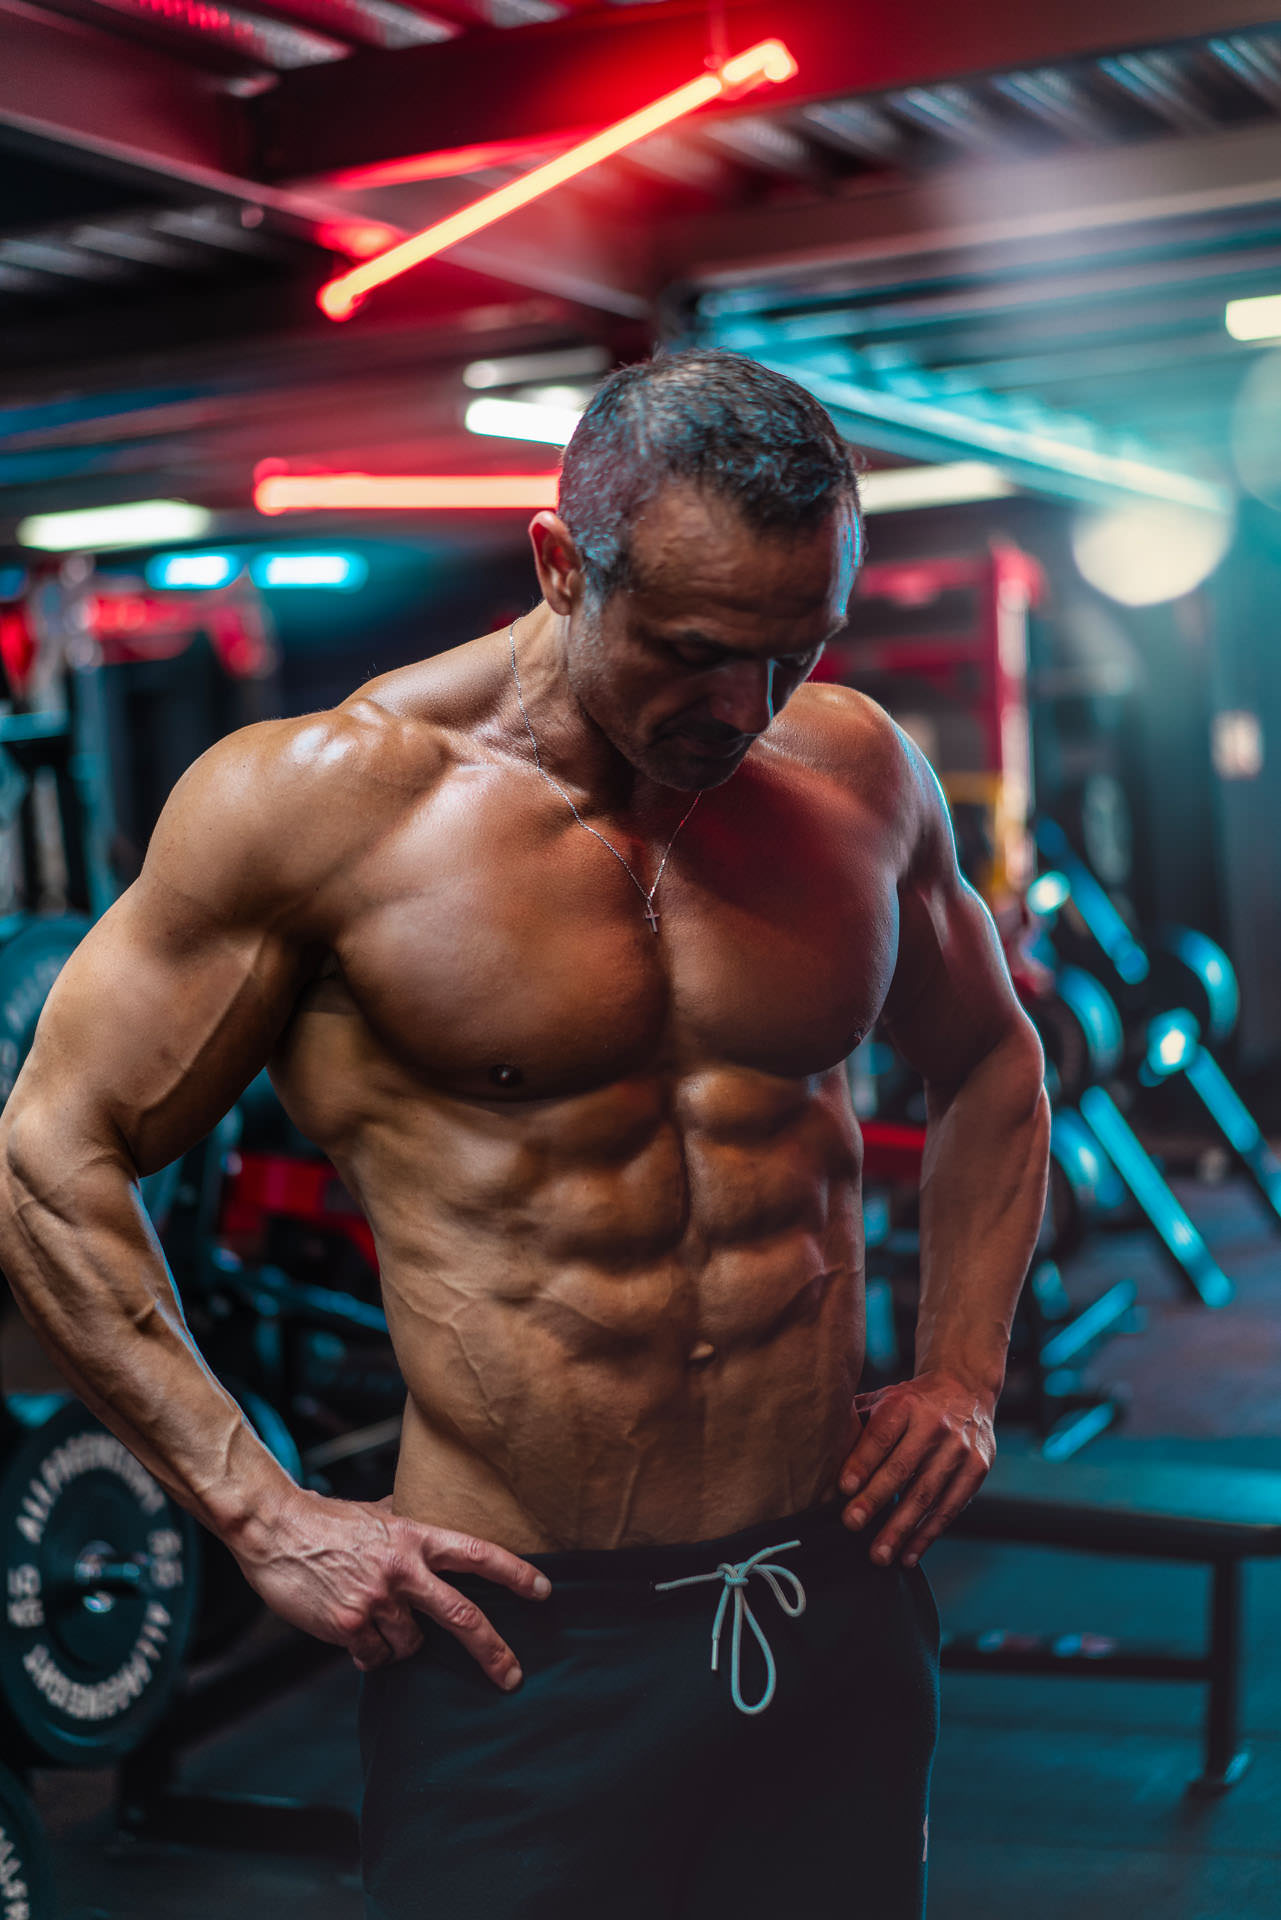 2020-03-15 - Enzo - Muscle Factory - 01565 - 1920px